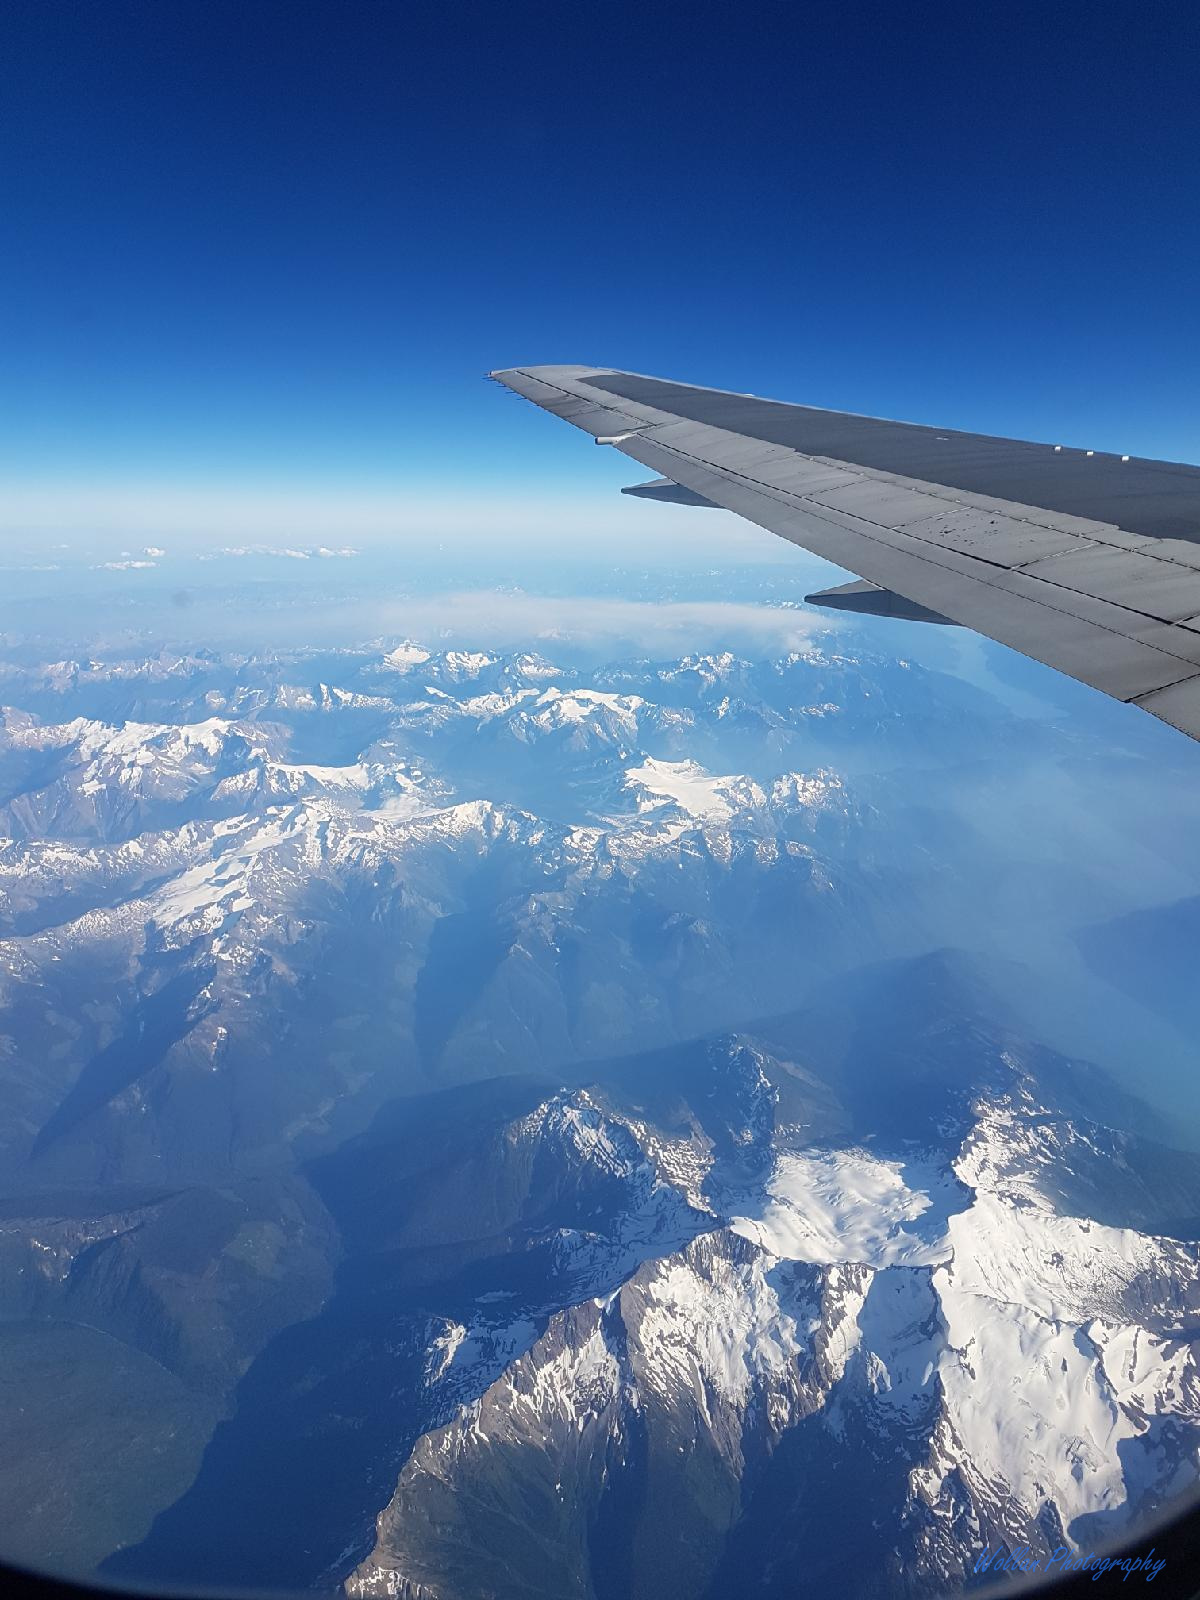 The world below - View out the window of the air canada flight by Alana